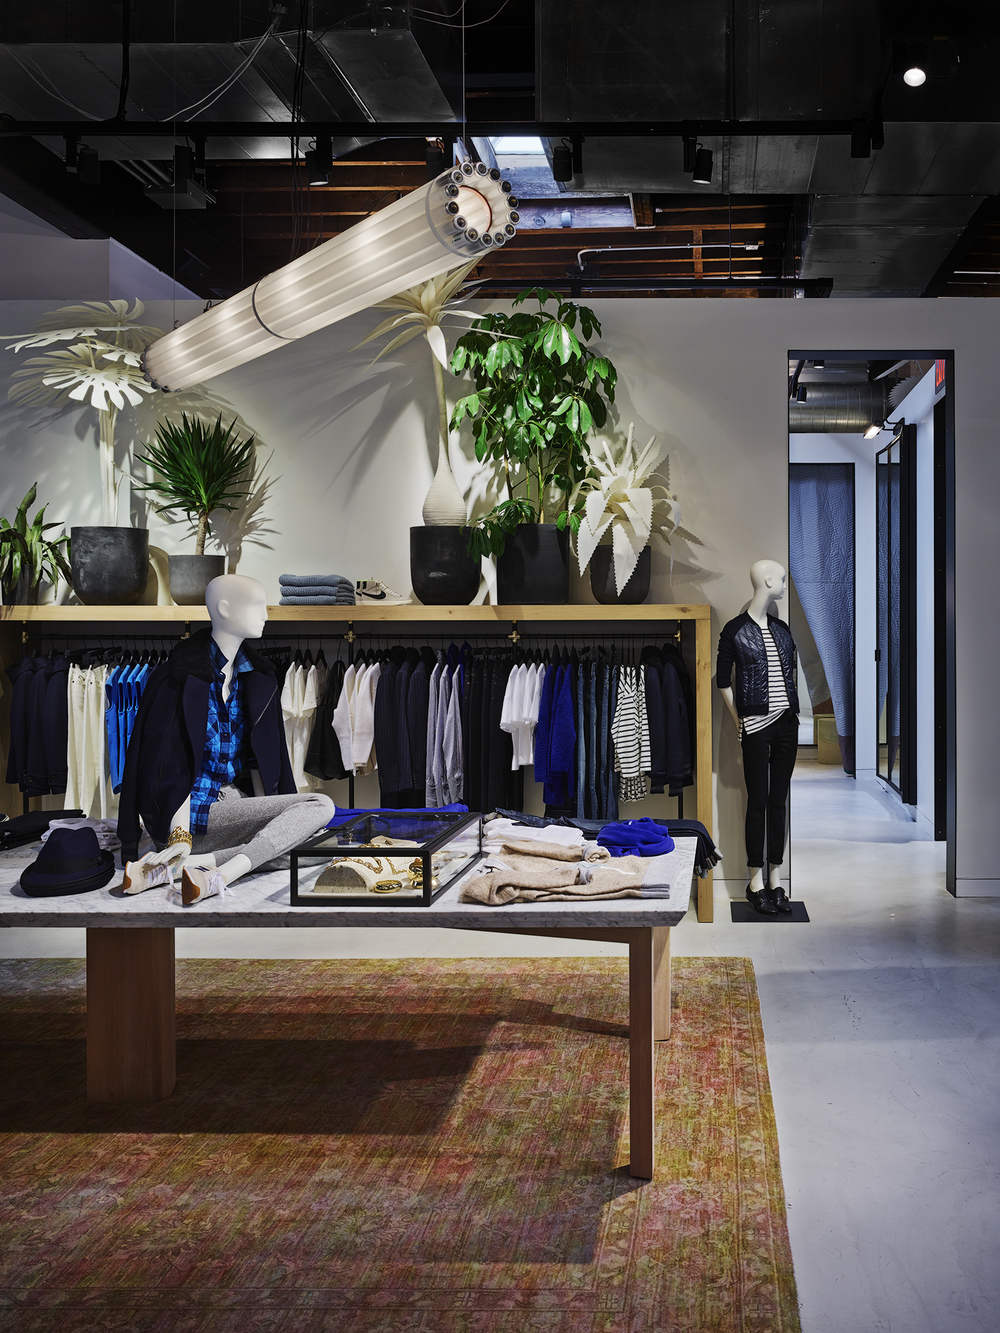 JCREW-Wythe_Av-F.OUDEMAN_2014©-02-SOFT.jpg